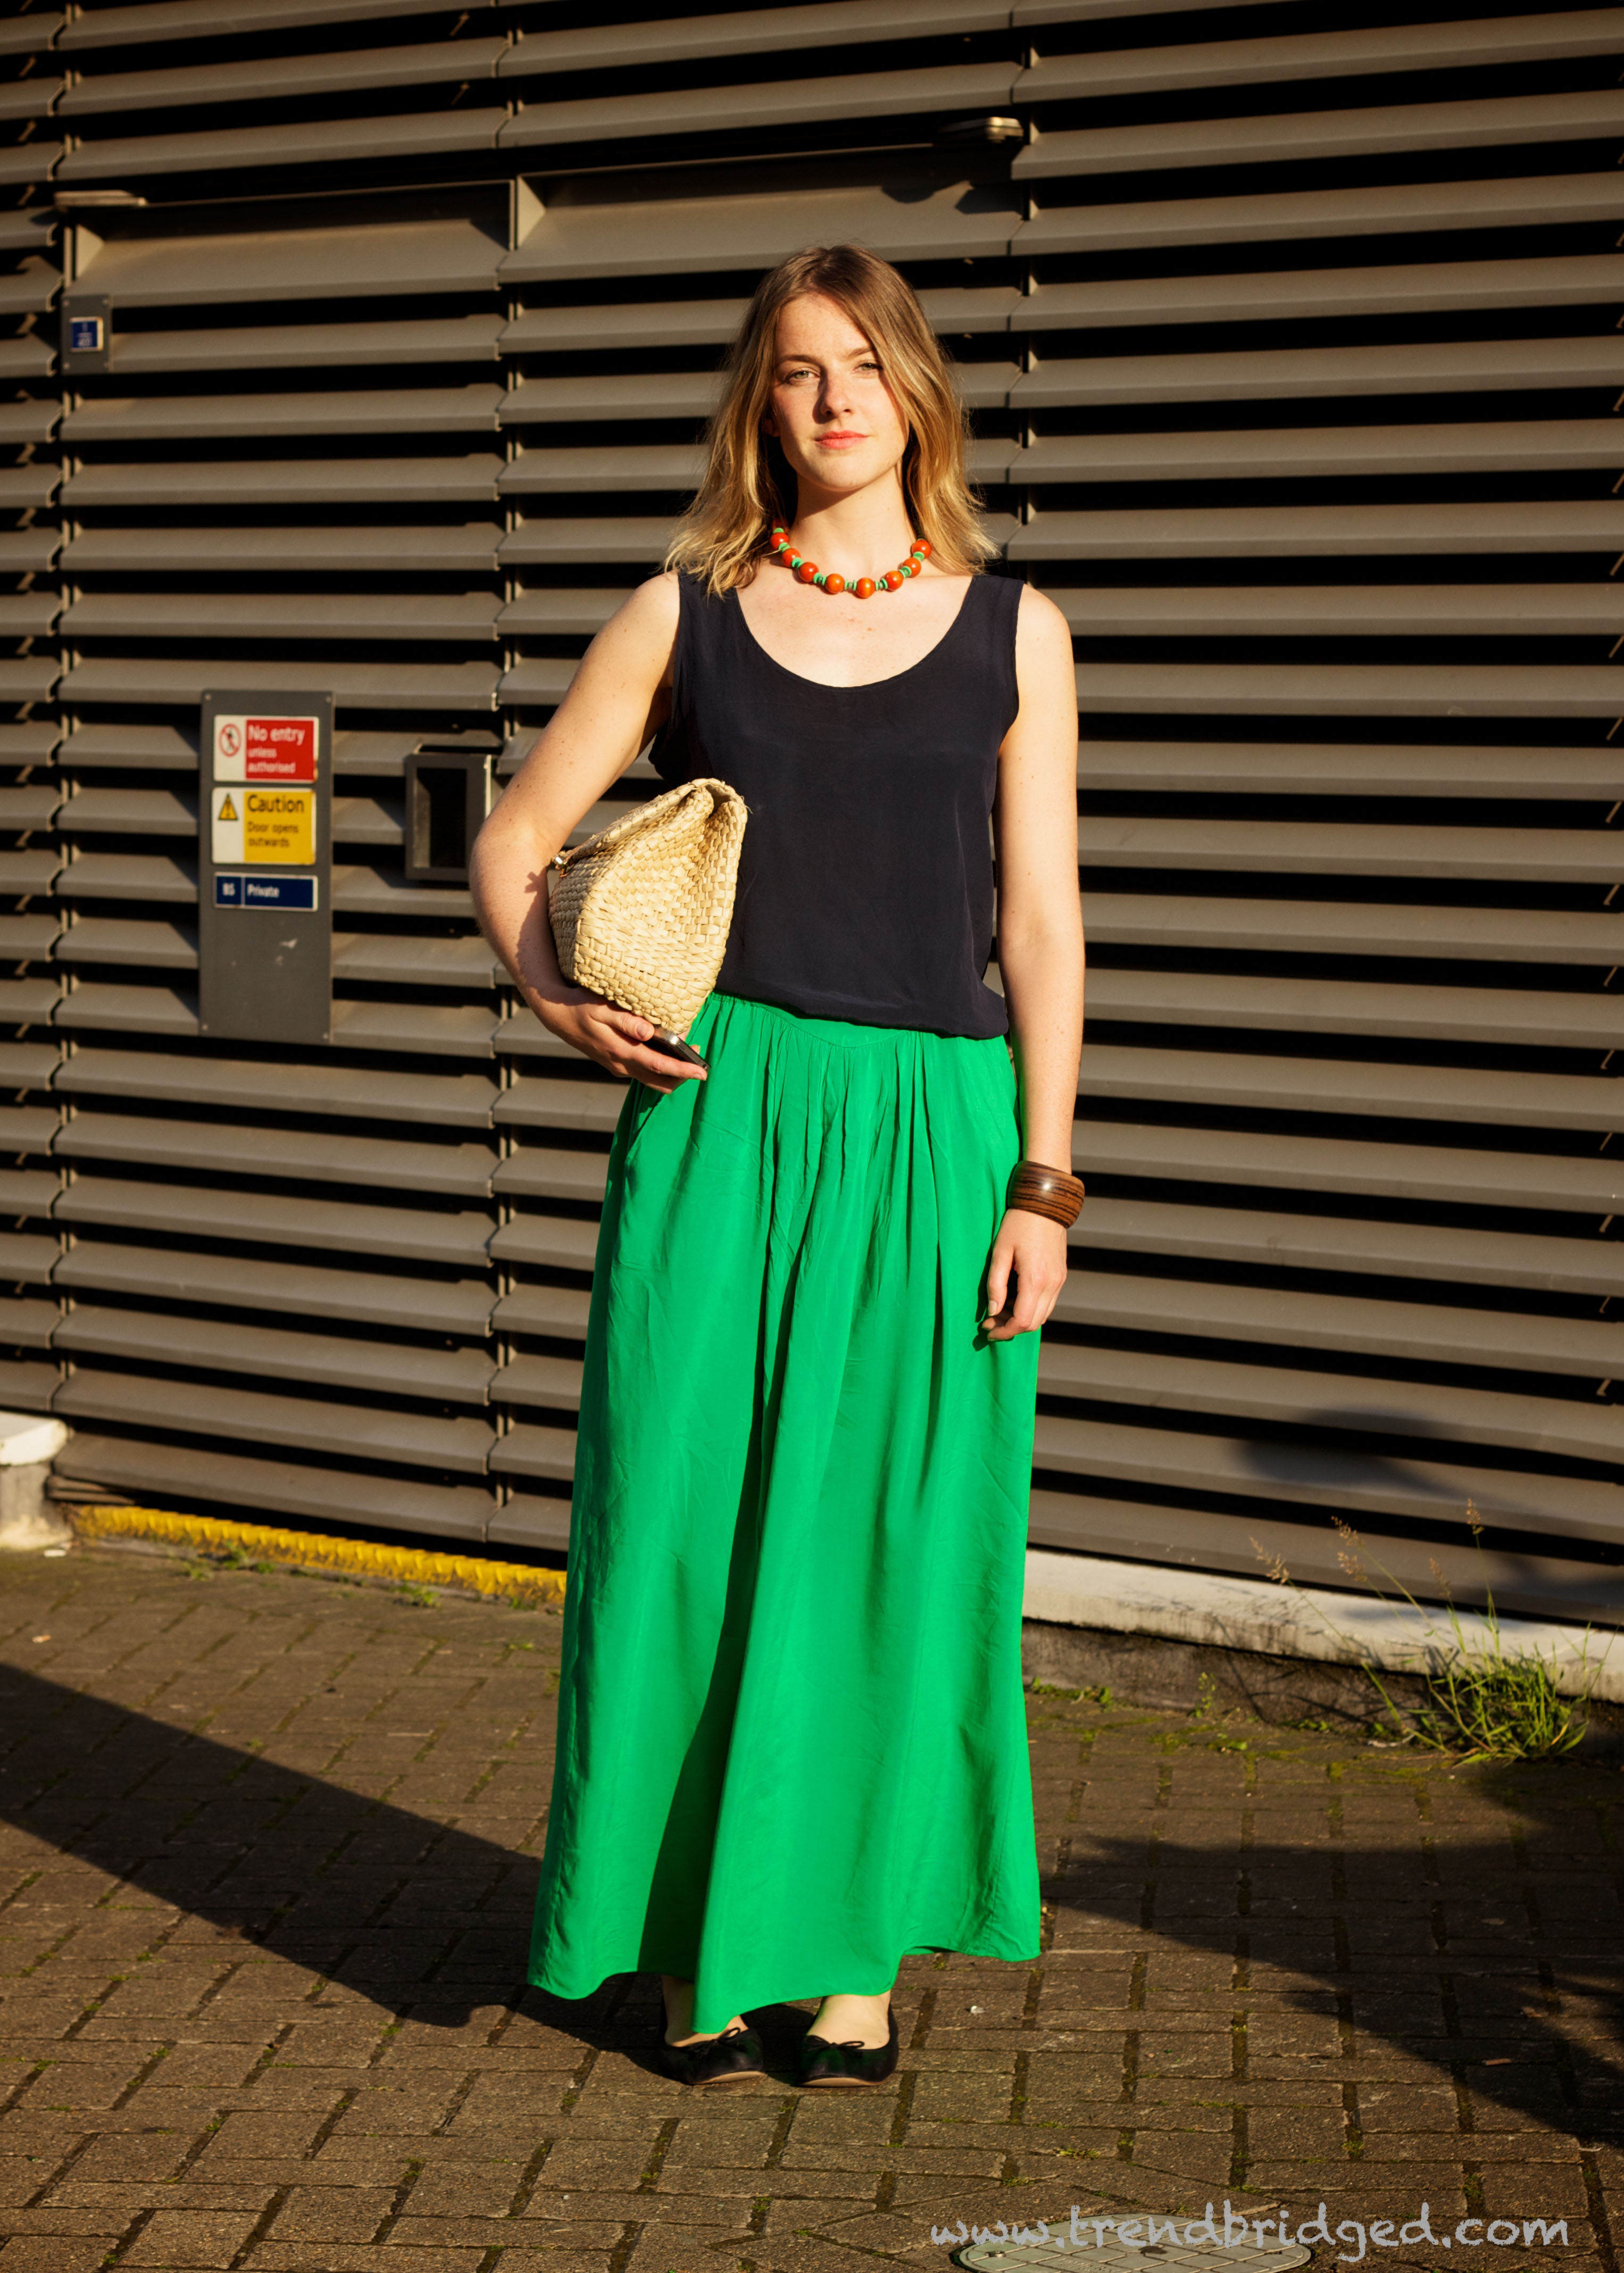 Green Skirt, Maxi Skirt, Tate Modern, Green an Black, London Fashion, Straw Bag